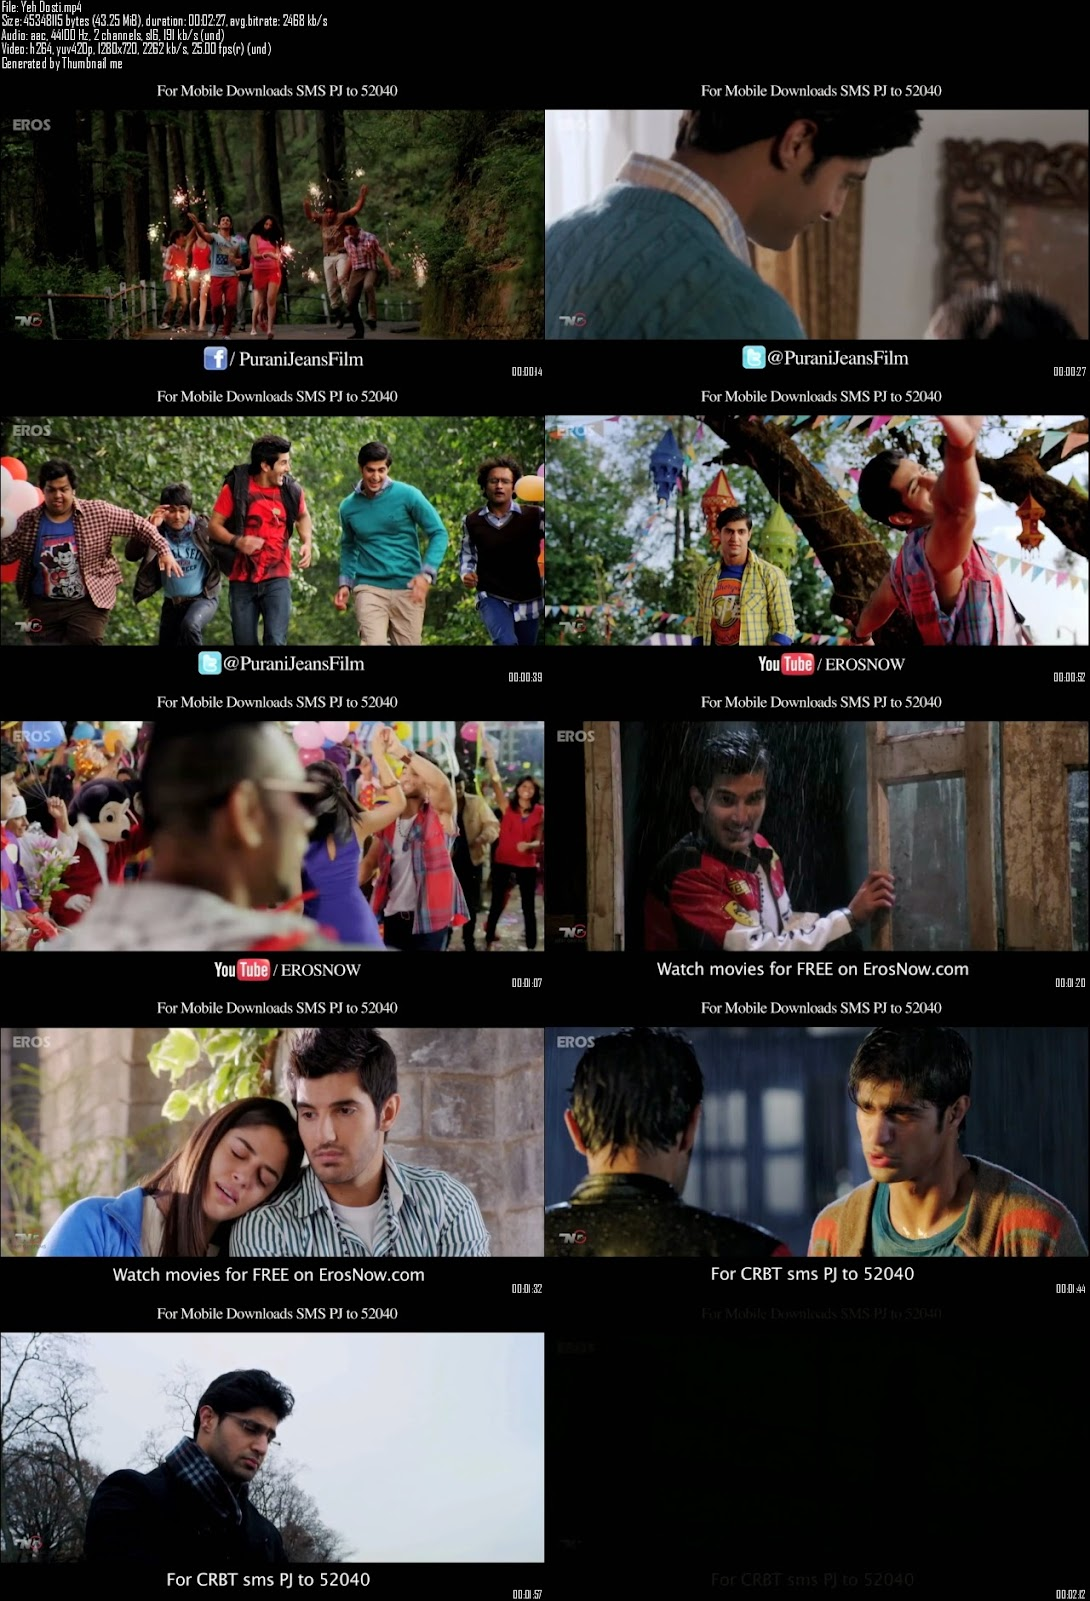 Mediafire Resumable Download Link For Video Song Yeh Dosti - Purani Jeans (2014)